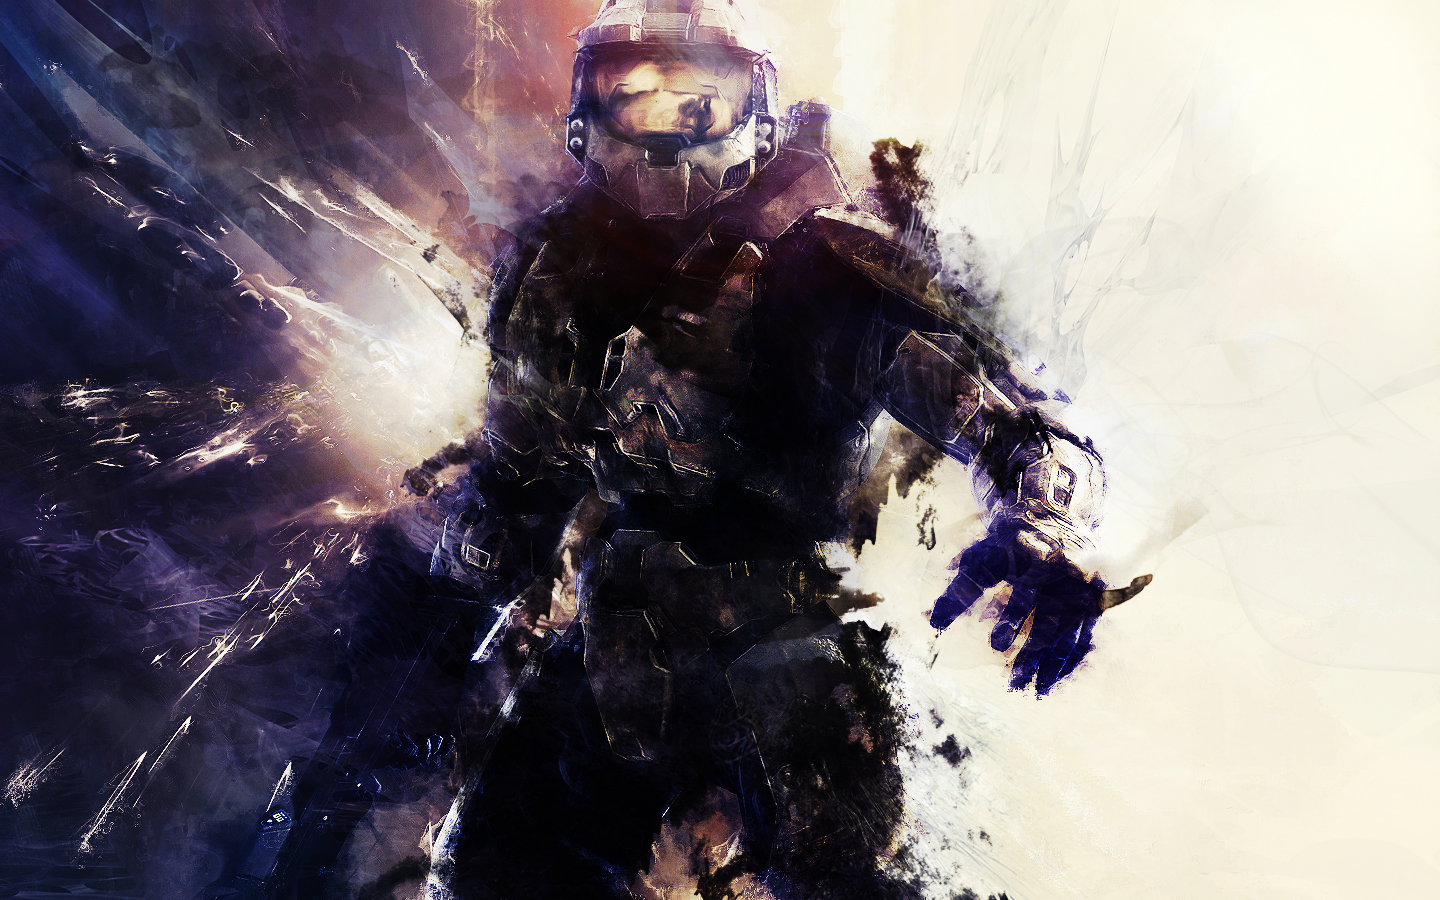 Master Chief Looking Awesome Halo Game Halo Master Chief Halo 4